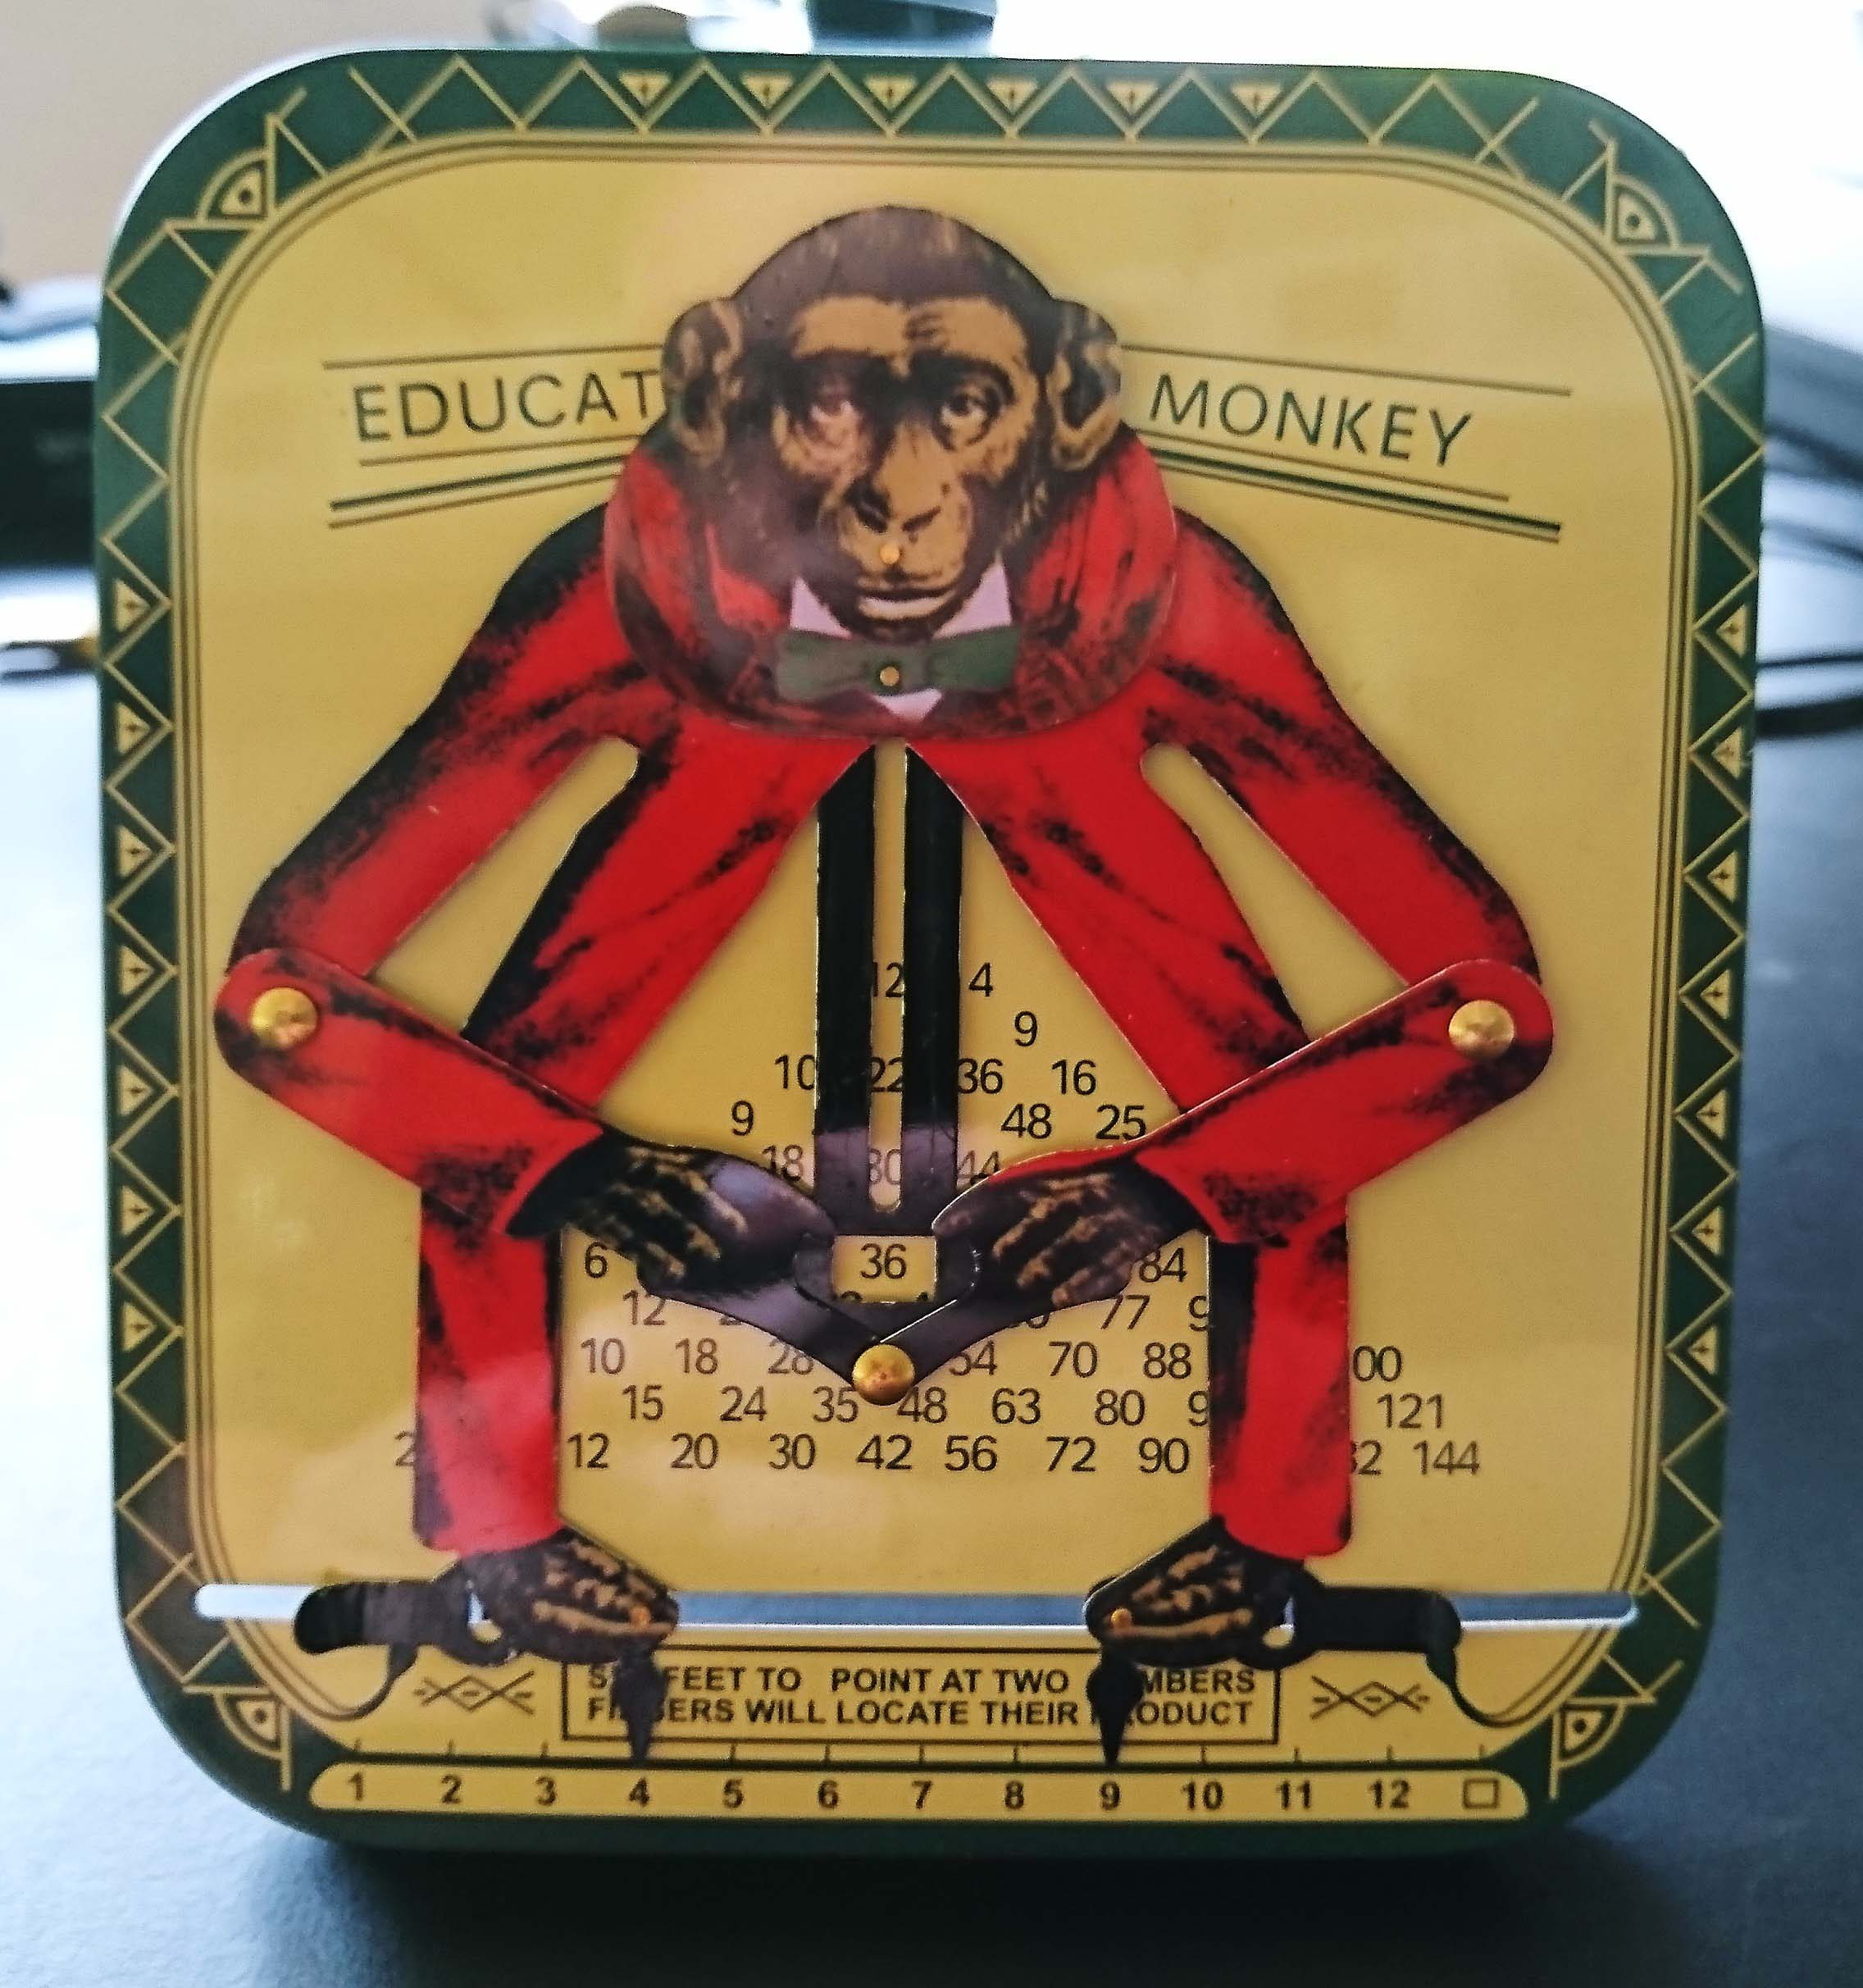 Educated Monkey